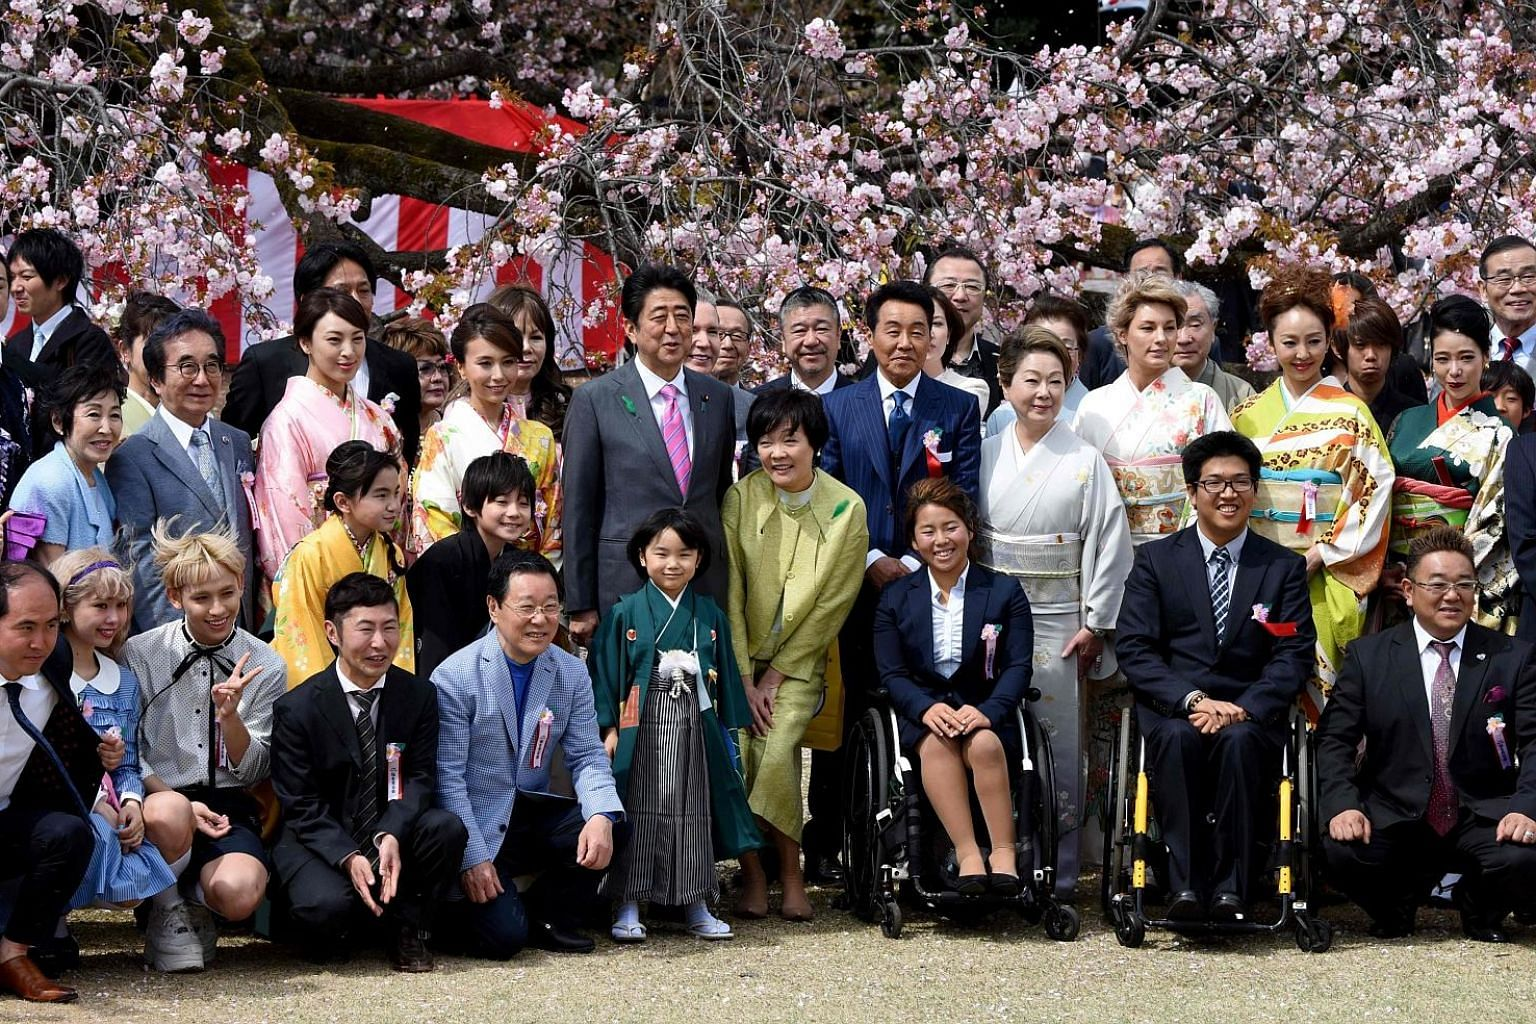 Japanese Prime Minister Shinzo Abe and his wife Akie (centre) posing with entertainers and athletes during the cherry blossom viewing party in Tokyo. The government said it would scrap next year's party after Mr Abe came under fire amid claims he inv